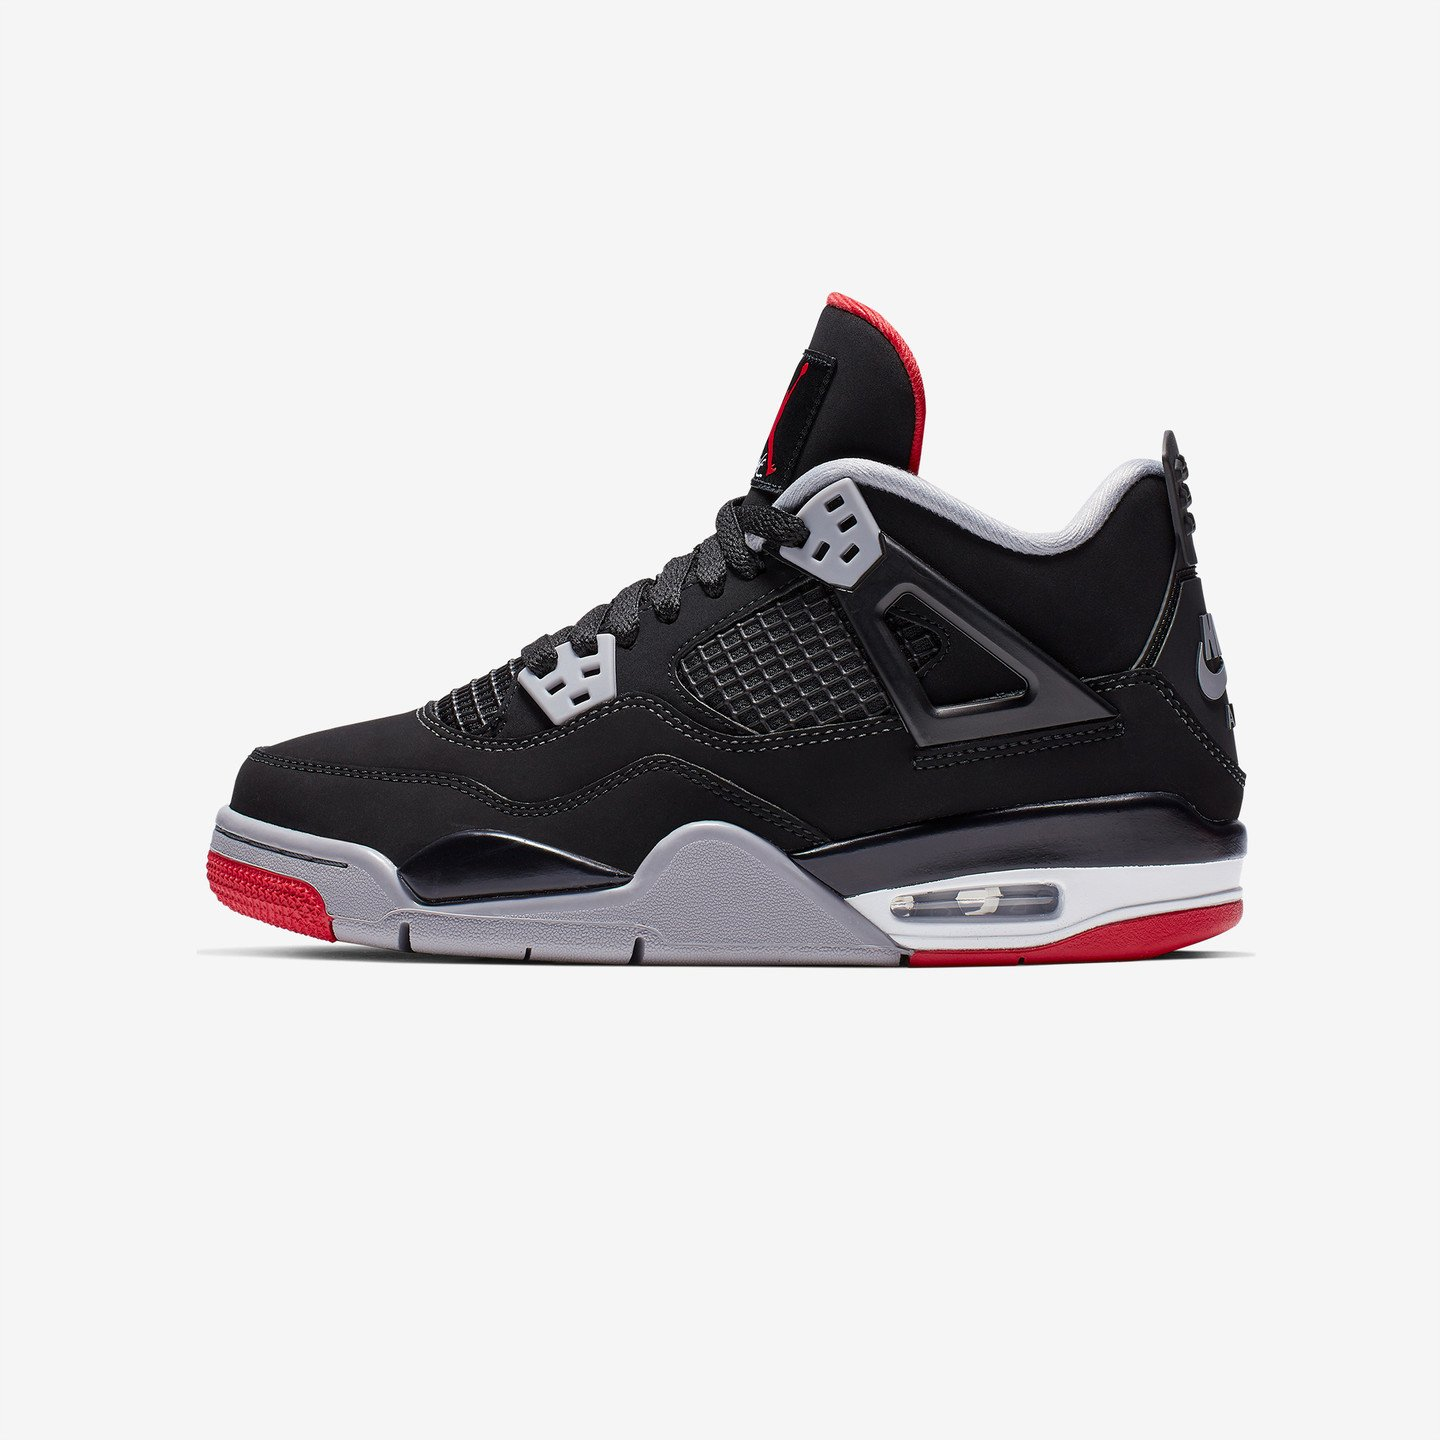 Jordan Air Jordan 4 Retro OG GS 'Bred' Black / Fire Red / Cement Grey / Summit White 408452-060